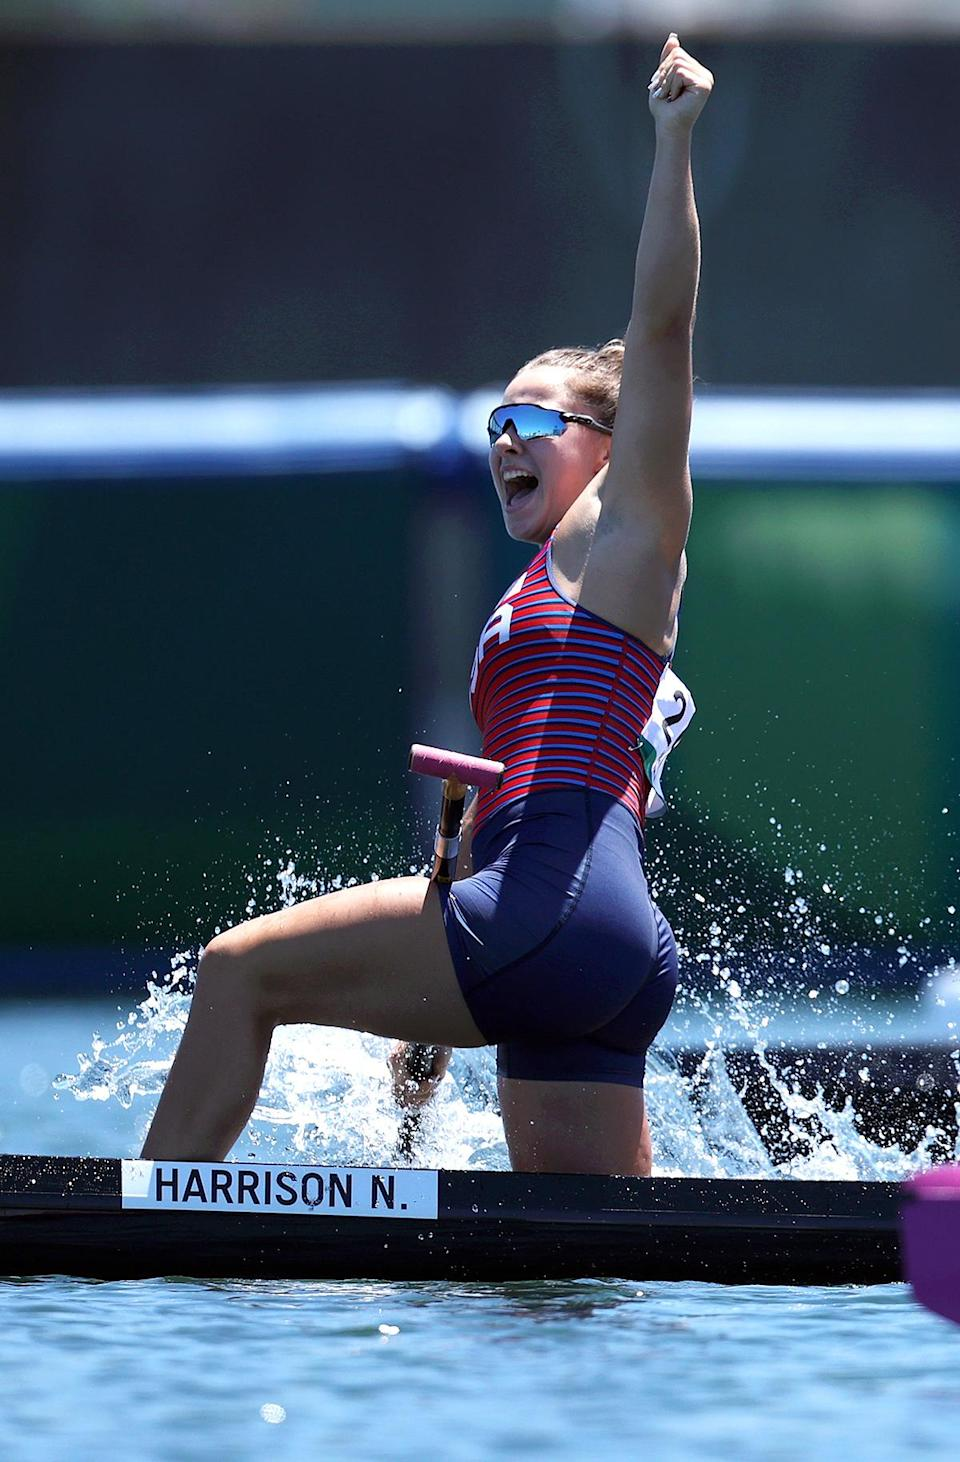 """<p>Biography: 19 years old</p> <p>Event: Women's canoe single 200m race</p> <p>Quote: """"I'm hoping this can really help put [my sport] on the map and get girls like me involved, and boys. Because it's a cool sport. It's fun, it's competitive and it would be awesome to kind of get the U.S. up to the same level as a lot of countries that we're competing against.""""</p>"""